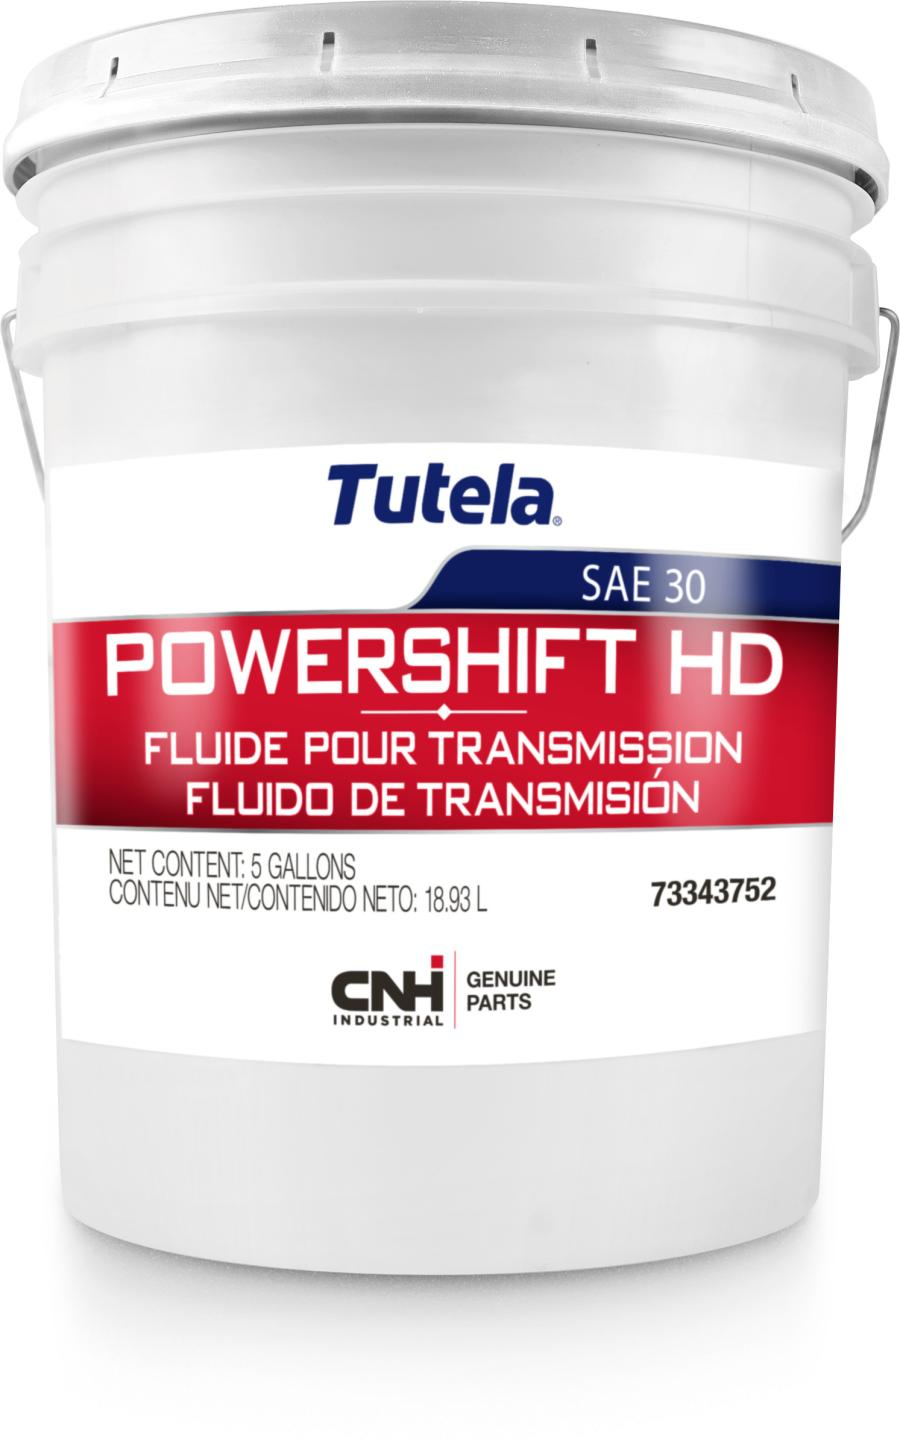 Tutela Powershift HD is recommended for use in heavy-duty powershift transmissions and final drives of today's construction and mining equipment.